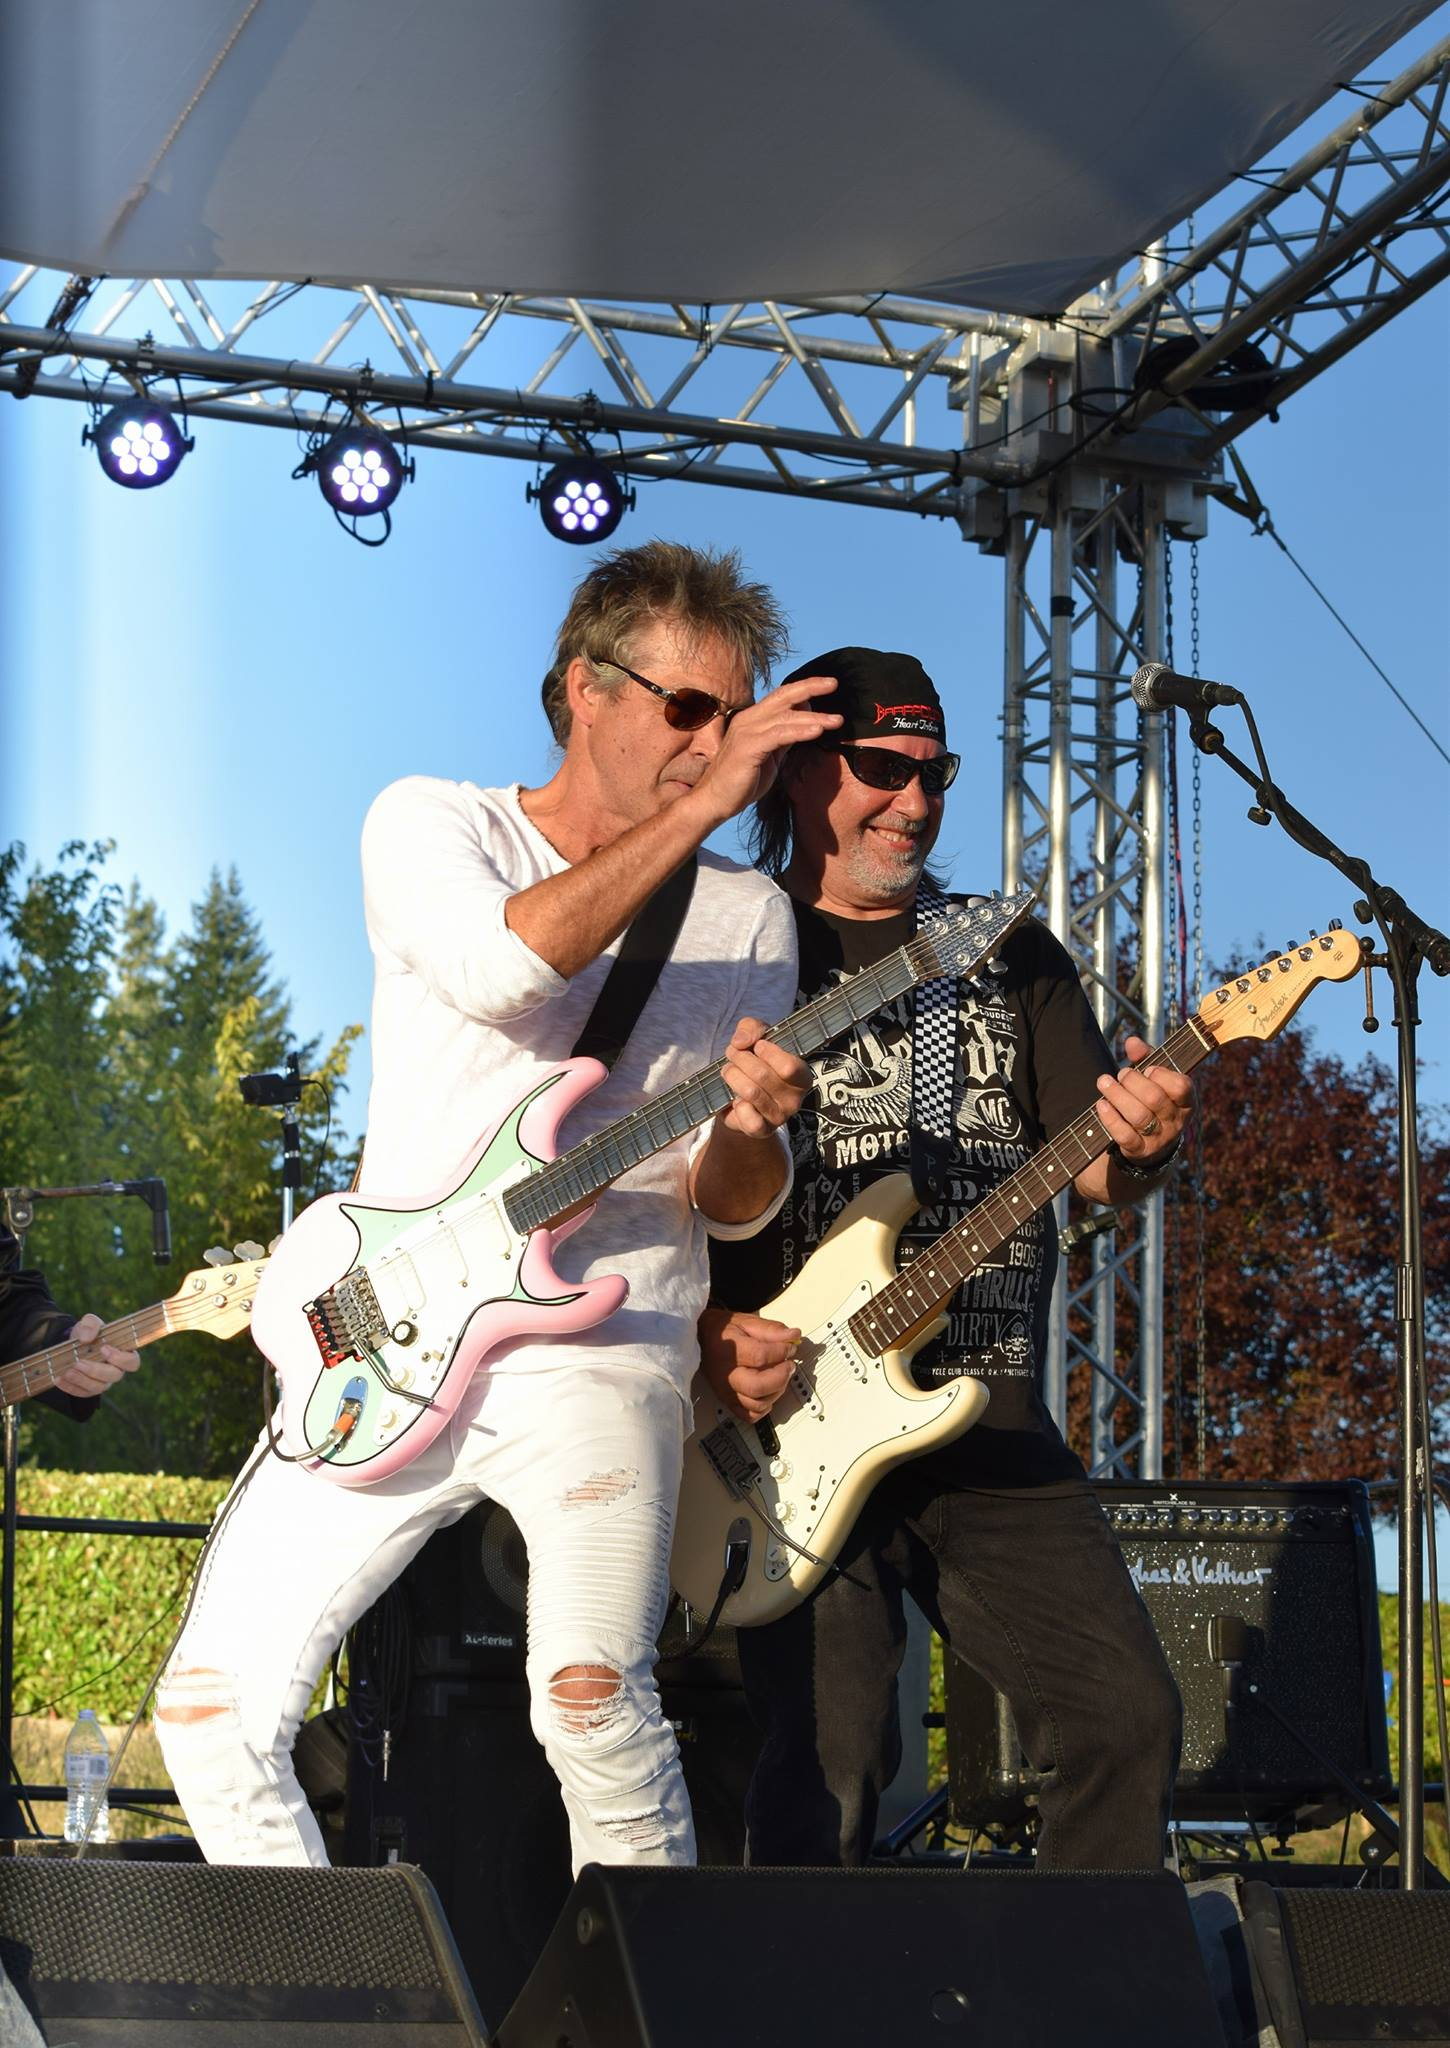 Two great Axemen - ROGER FISHER (co-founder Heart) & RAY ROPER (co-founder Stonebolt) shown here with BARRACUDA-The Essential Tribute to the band HEART at the 2017 VINEYARD JAM. Courtesy Murray Mcvay.